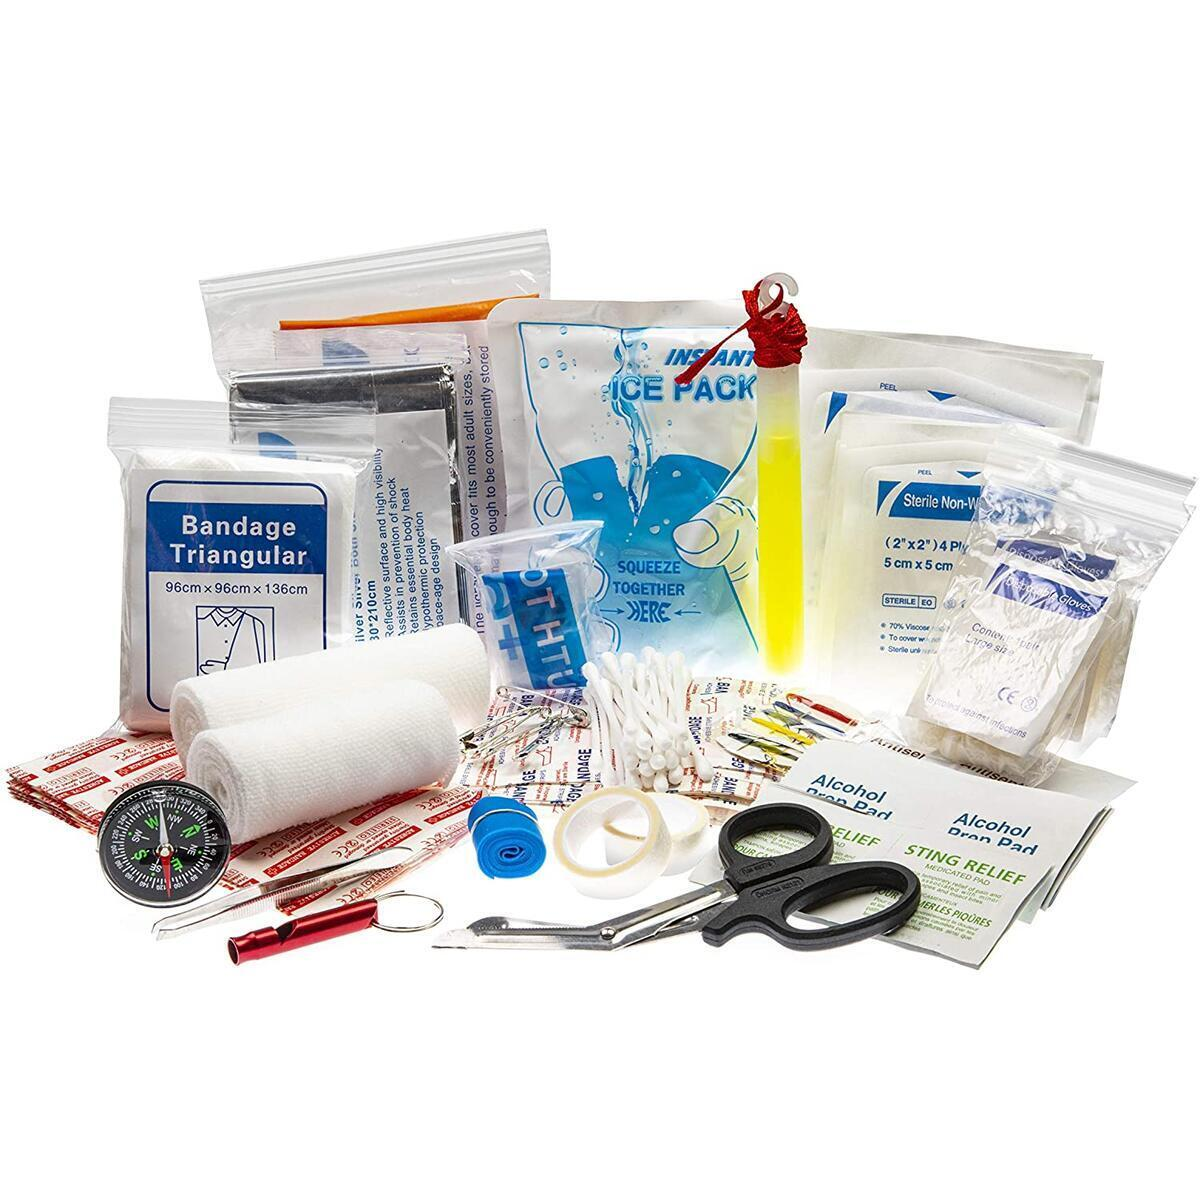 Dexmed All-Purpose Waterproof First Aid Medical Kit - 148 Pieces- Portable and Compact for Travel, Ideal for Home, Car, Workplace and Outdoor Emergencies